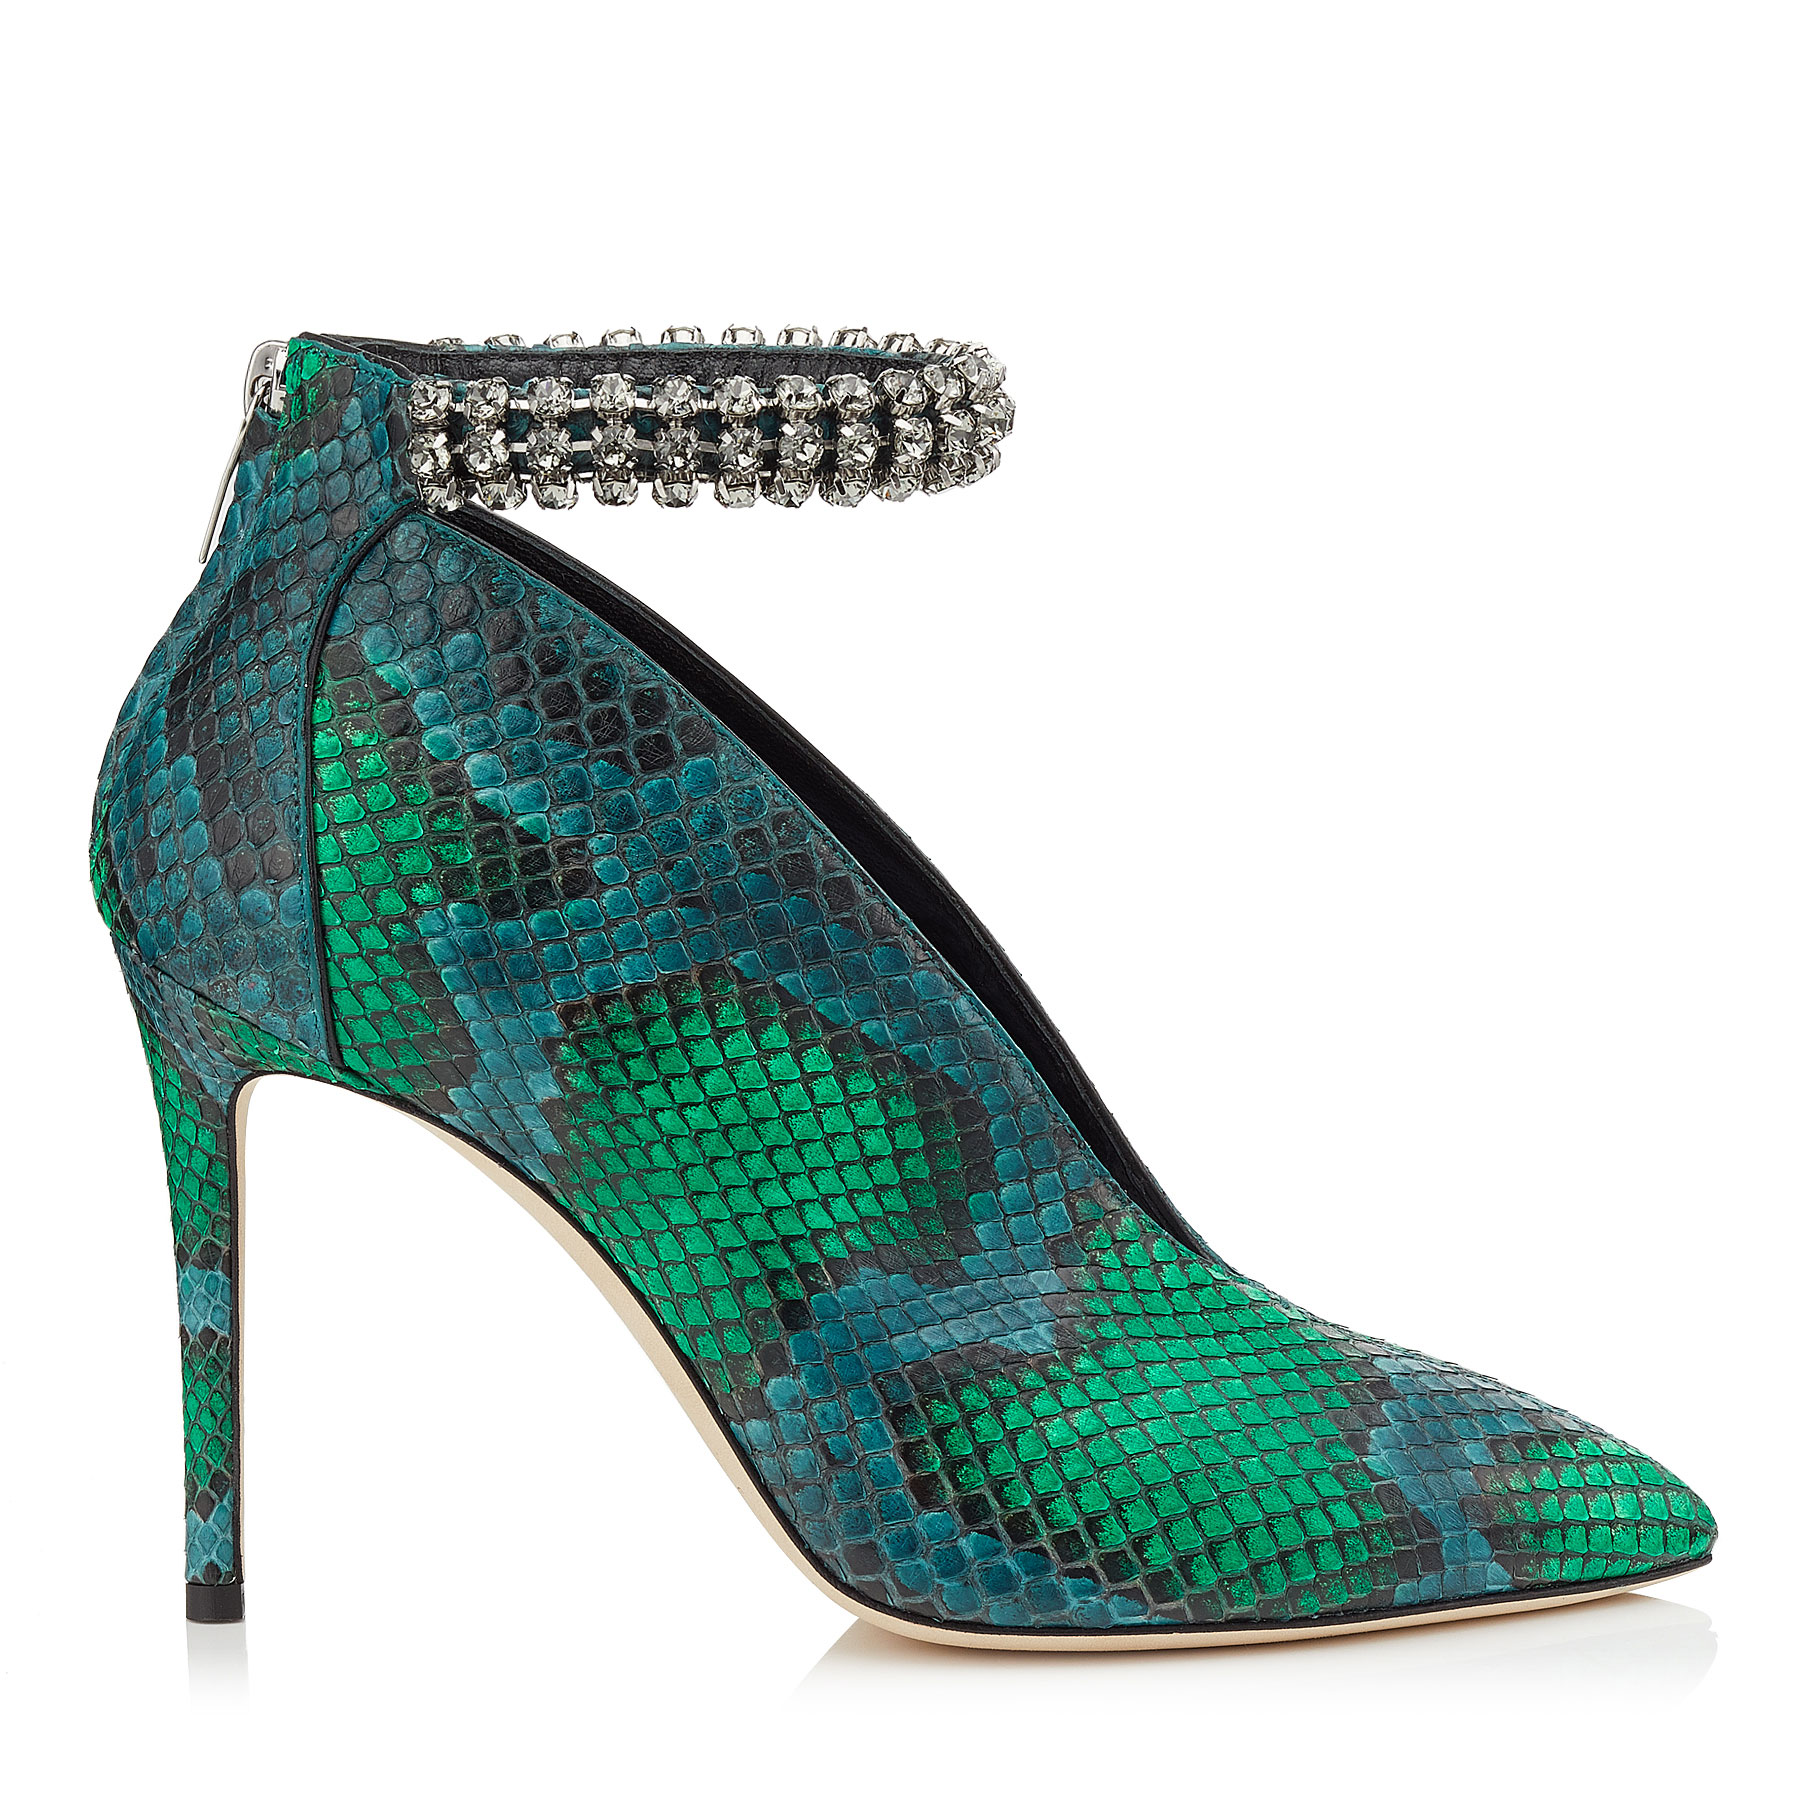 LUX 100 Bottle Green and Pop Green Matt Painted Python Booties with Crystal Anklet